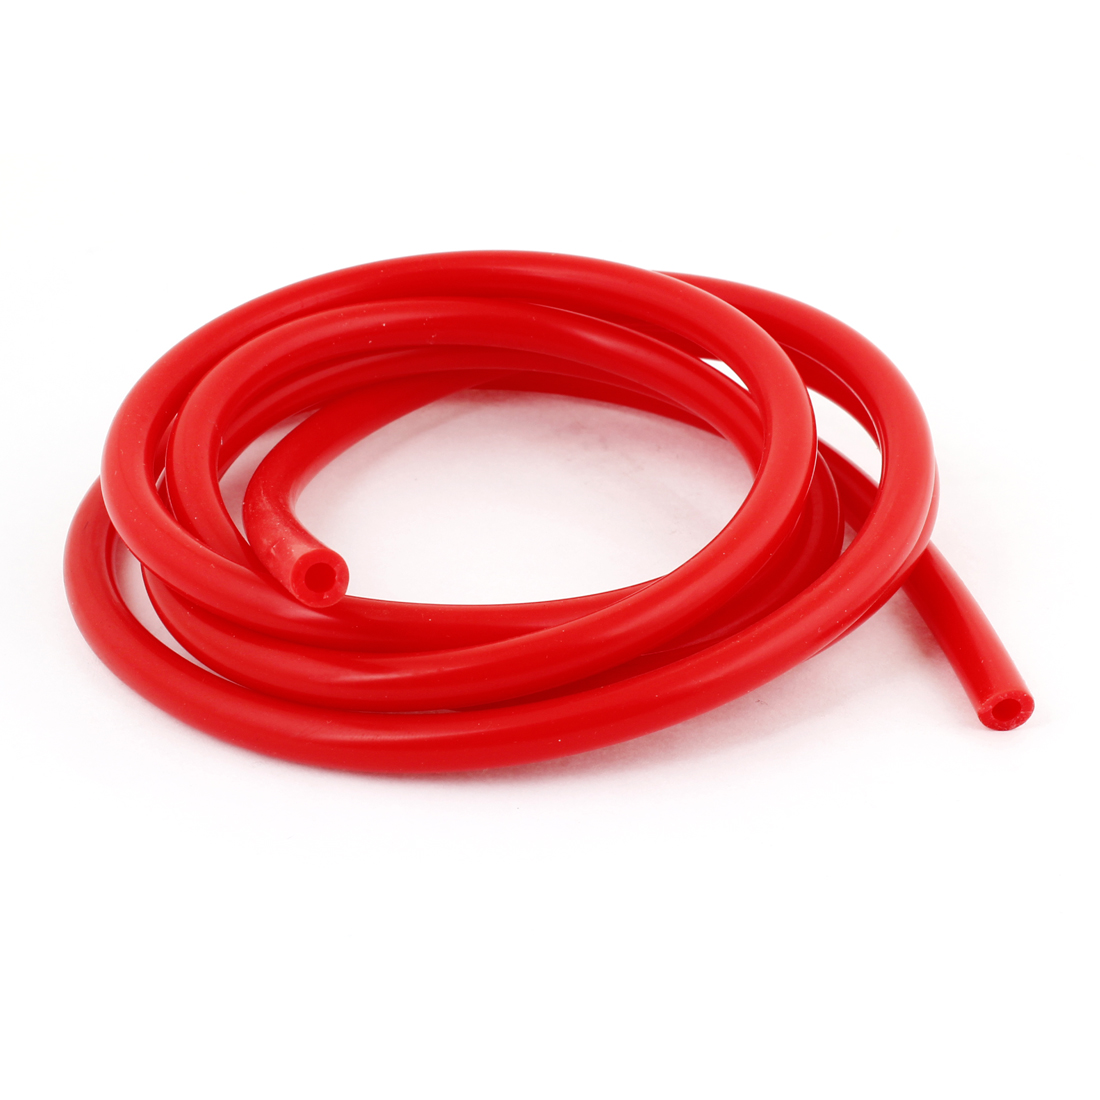 2M Long 4mm Inner Dia 8mm OD Red Silicone Vehicle Car Vacuum Hose Tubing Pipe(China (Mainland))